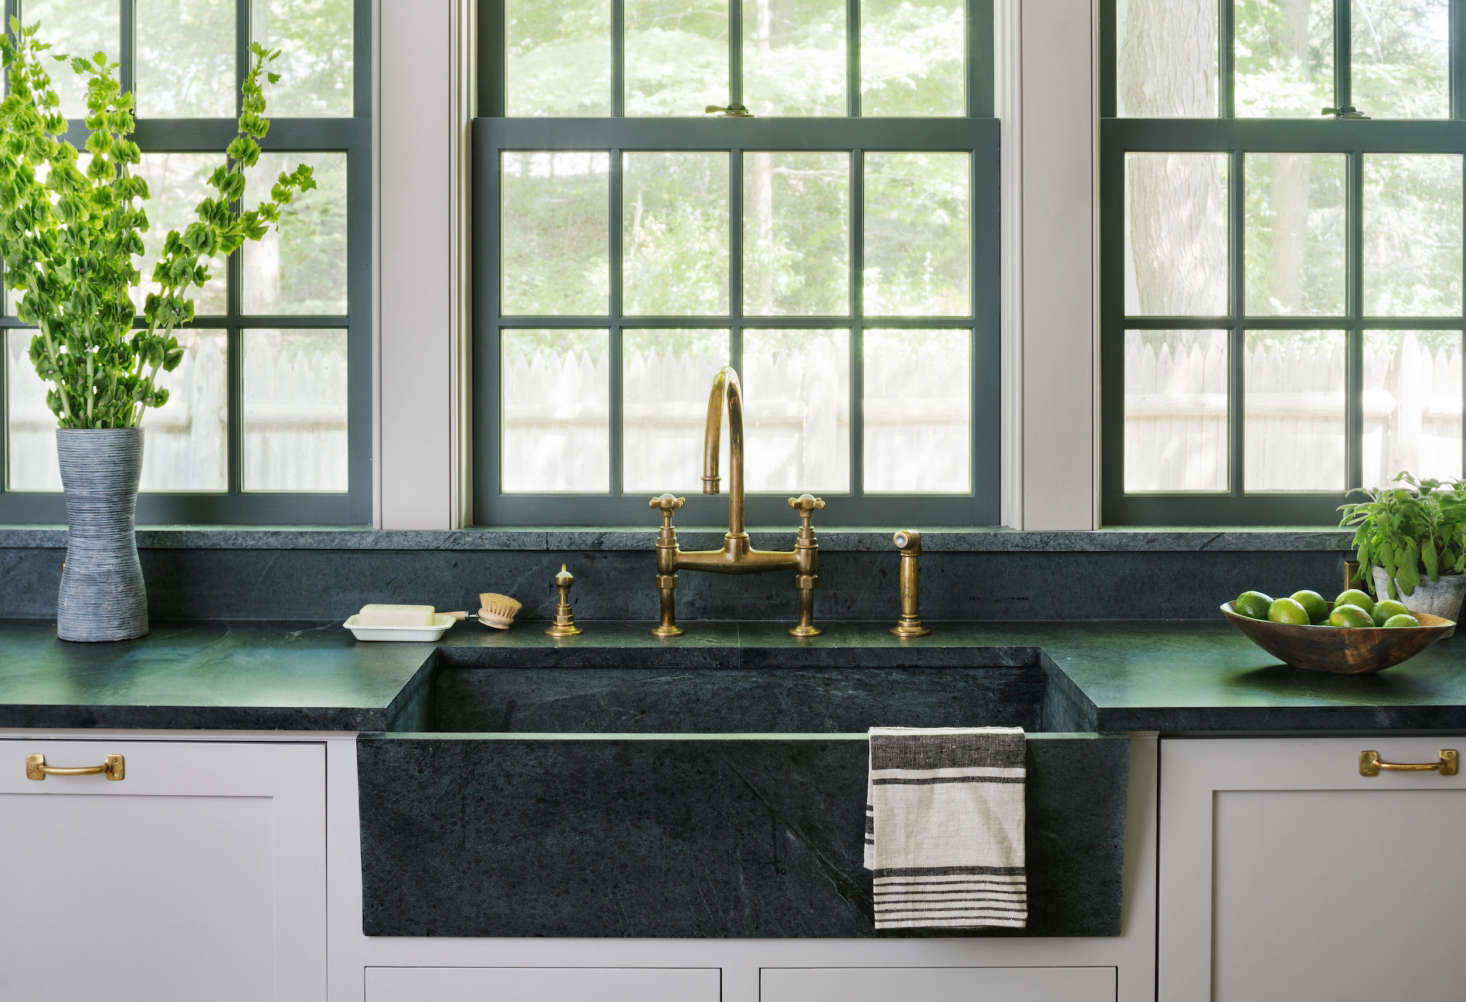 Stone Farmhouse Sink Lowest Price Everything You Need To Know About Soapstone Sinks In The Kitchen